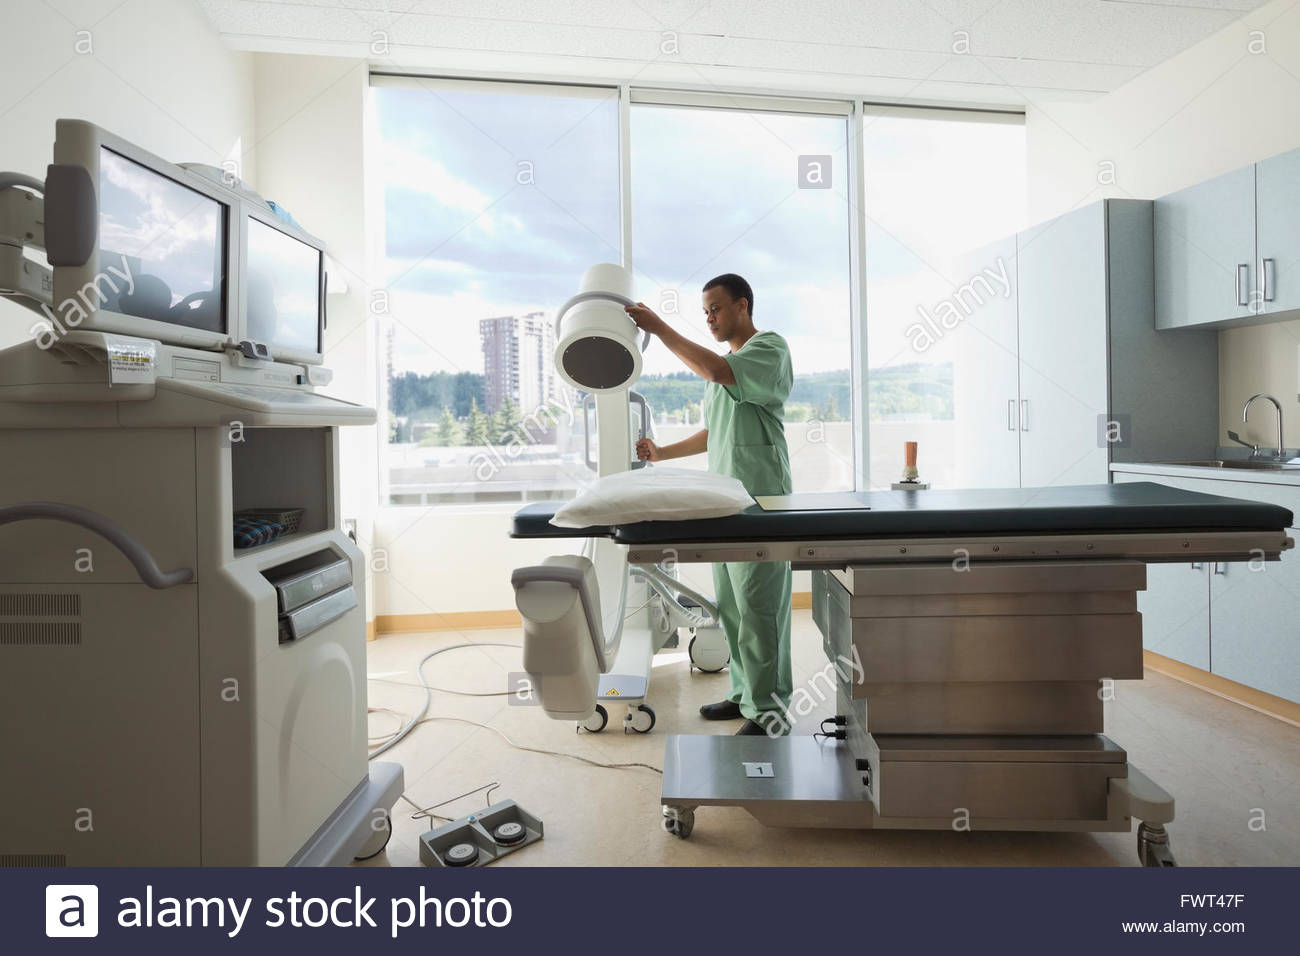 Male nurse working in radiology room - Stock Image